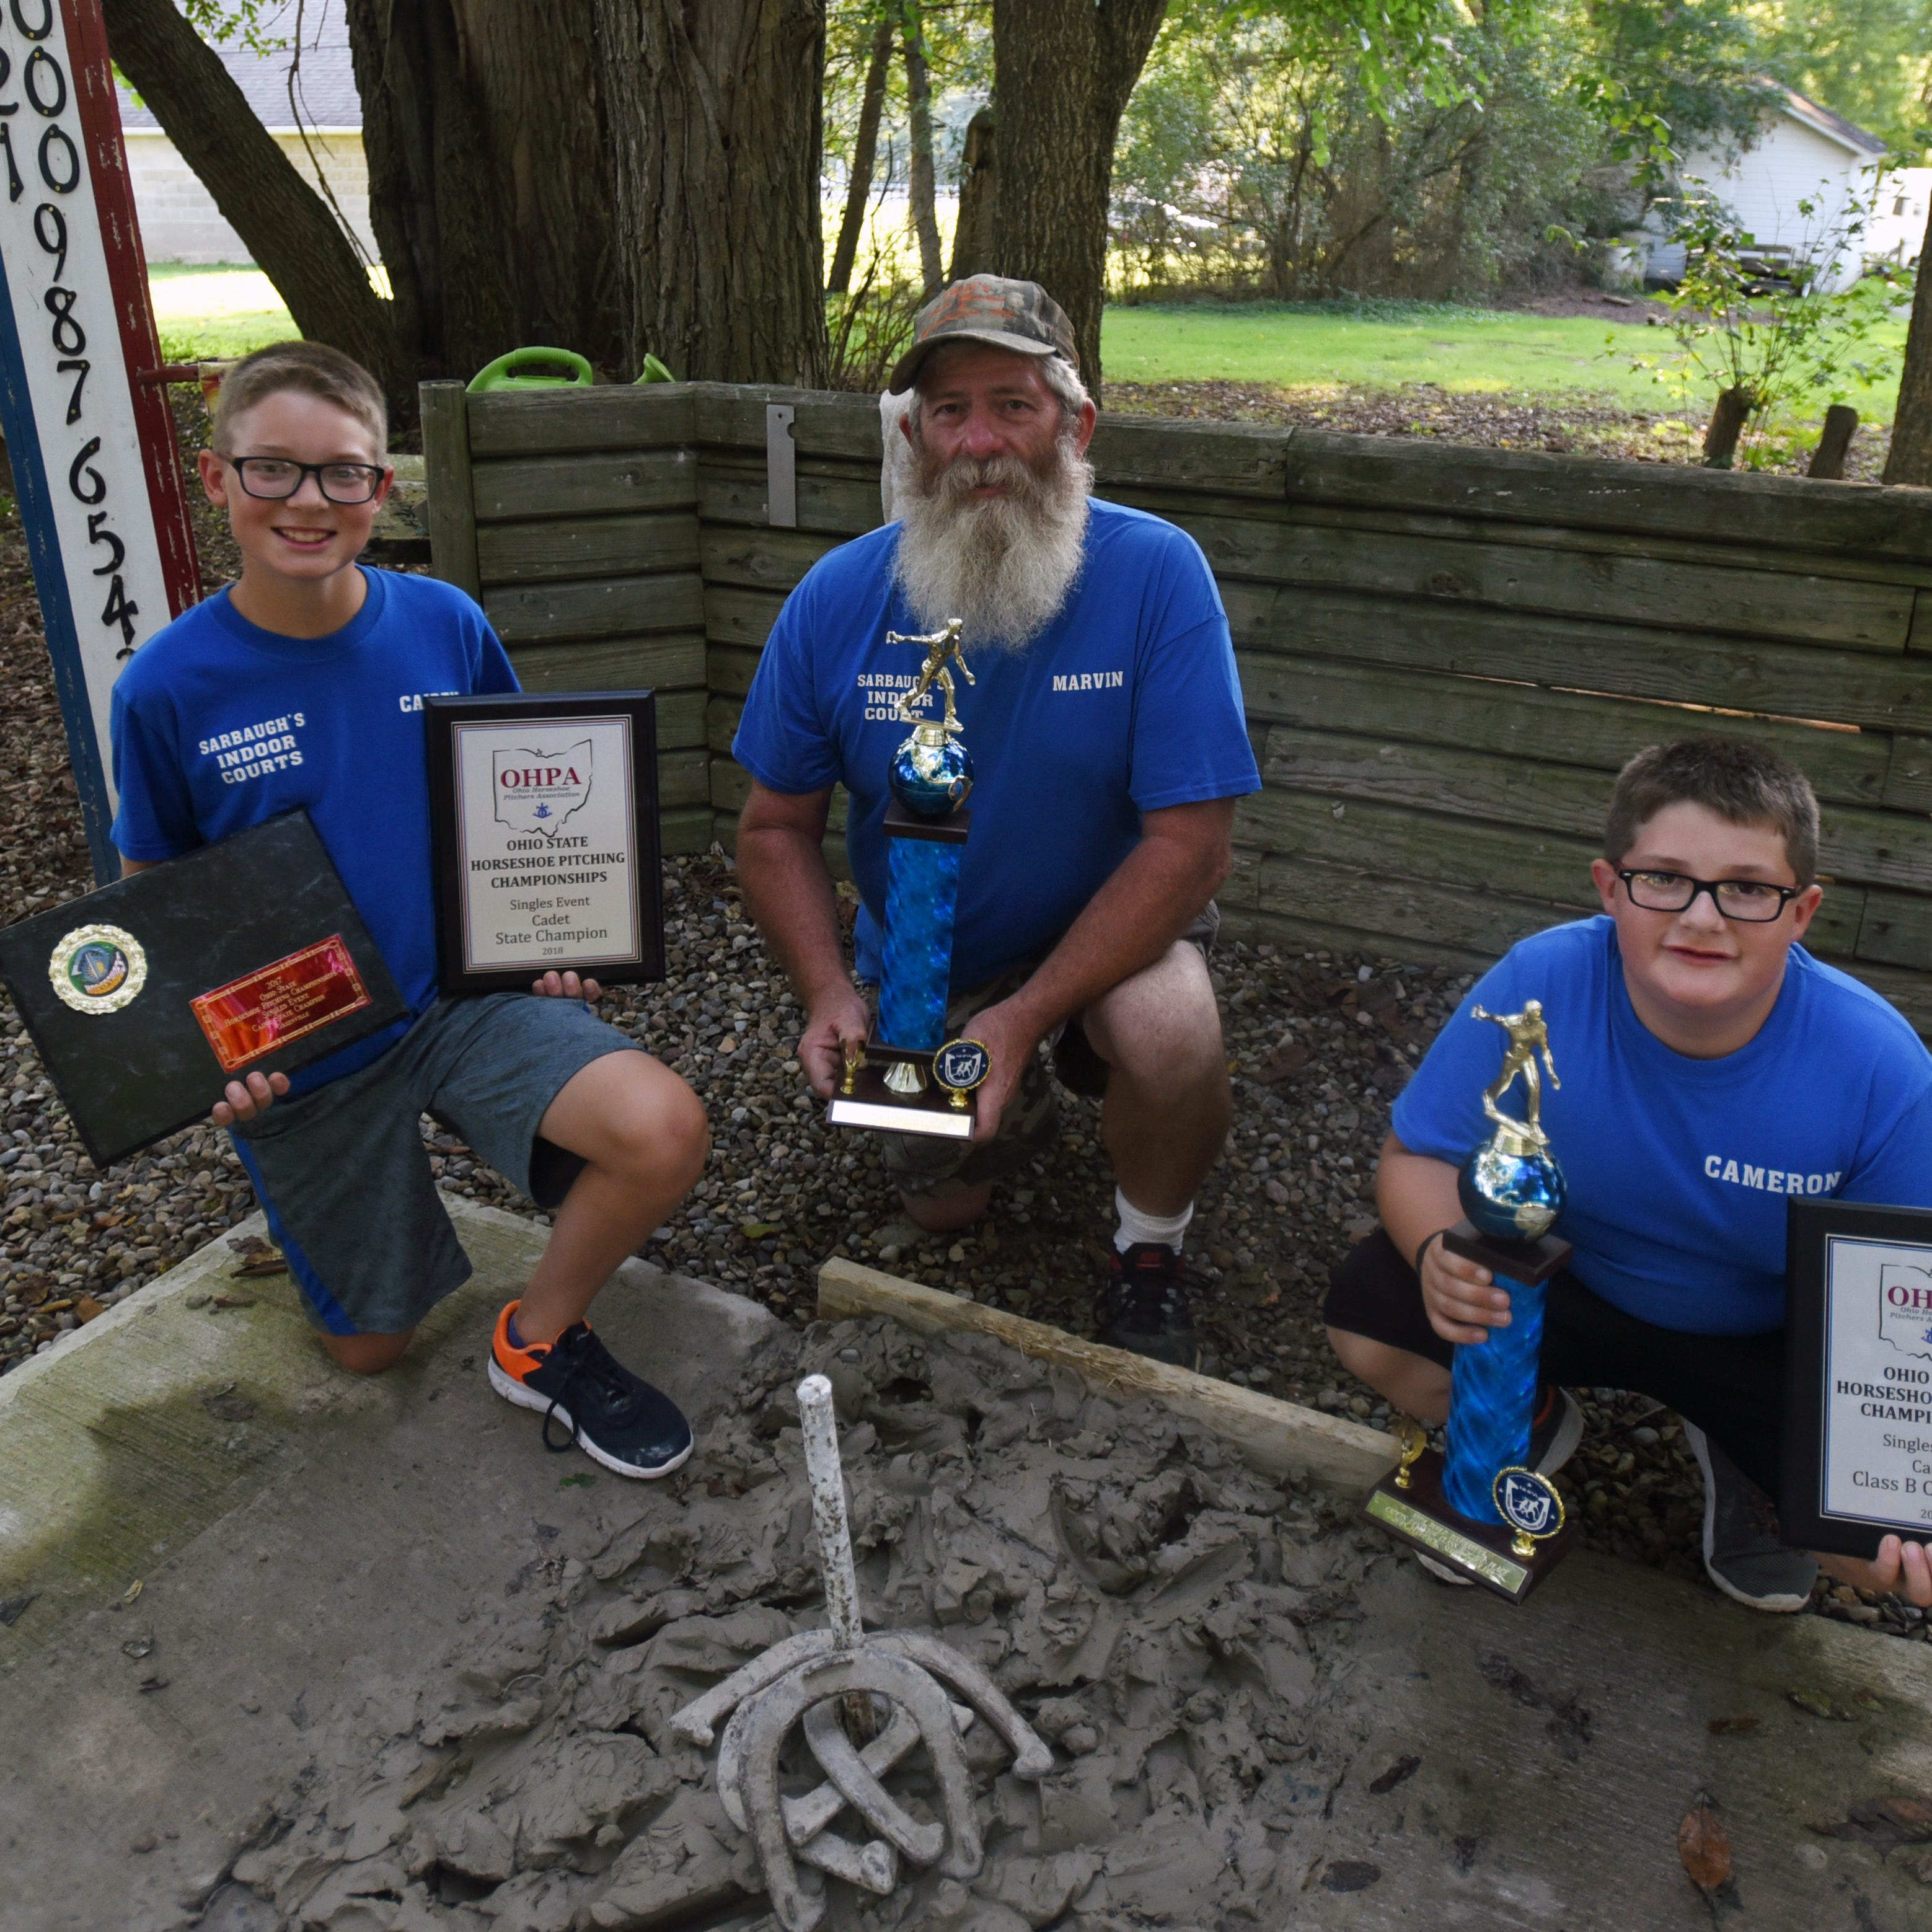 Horseshoes are more than a family hobby